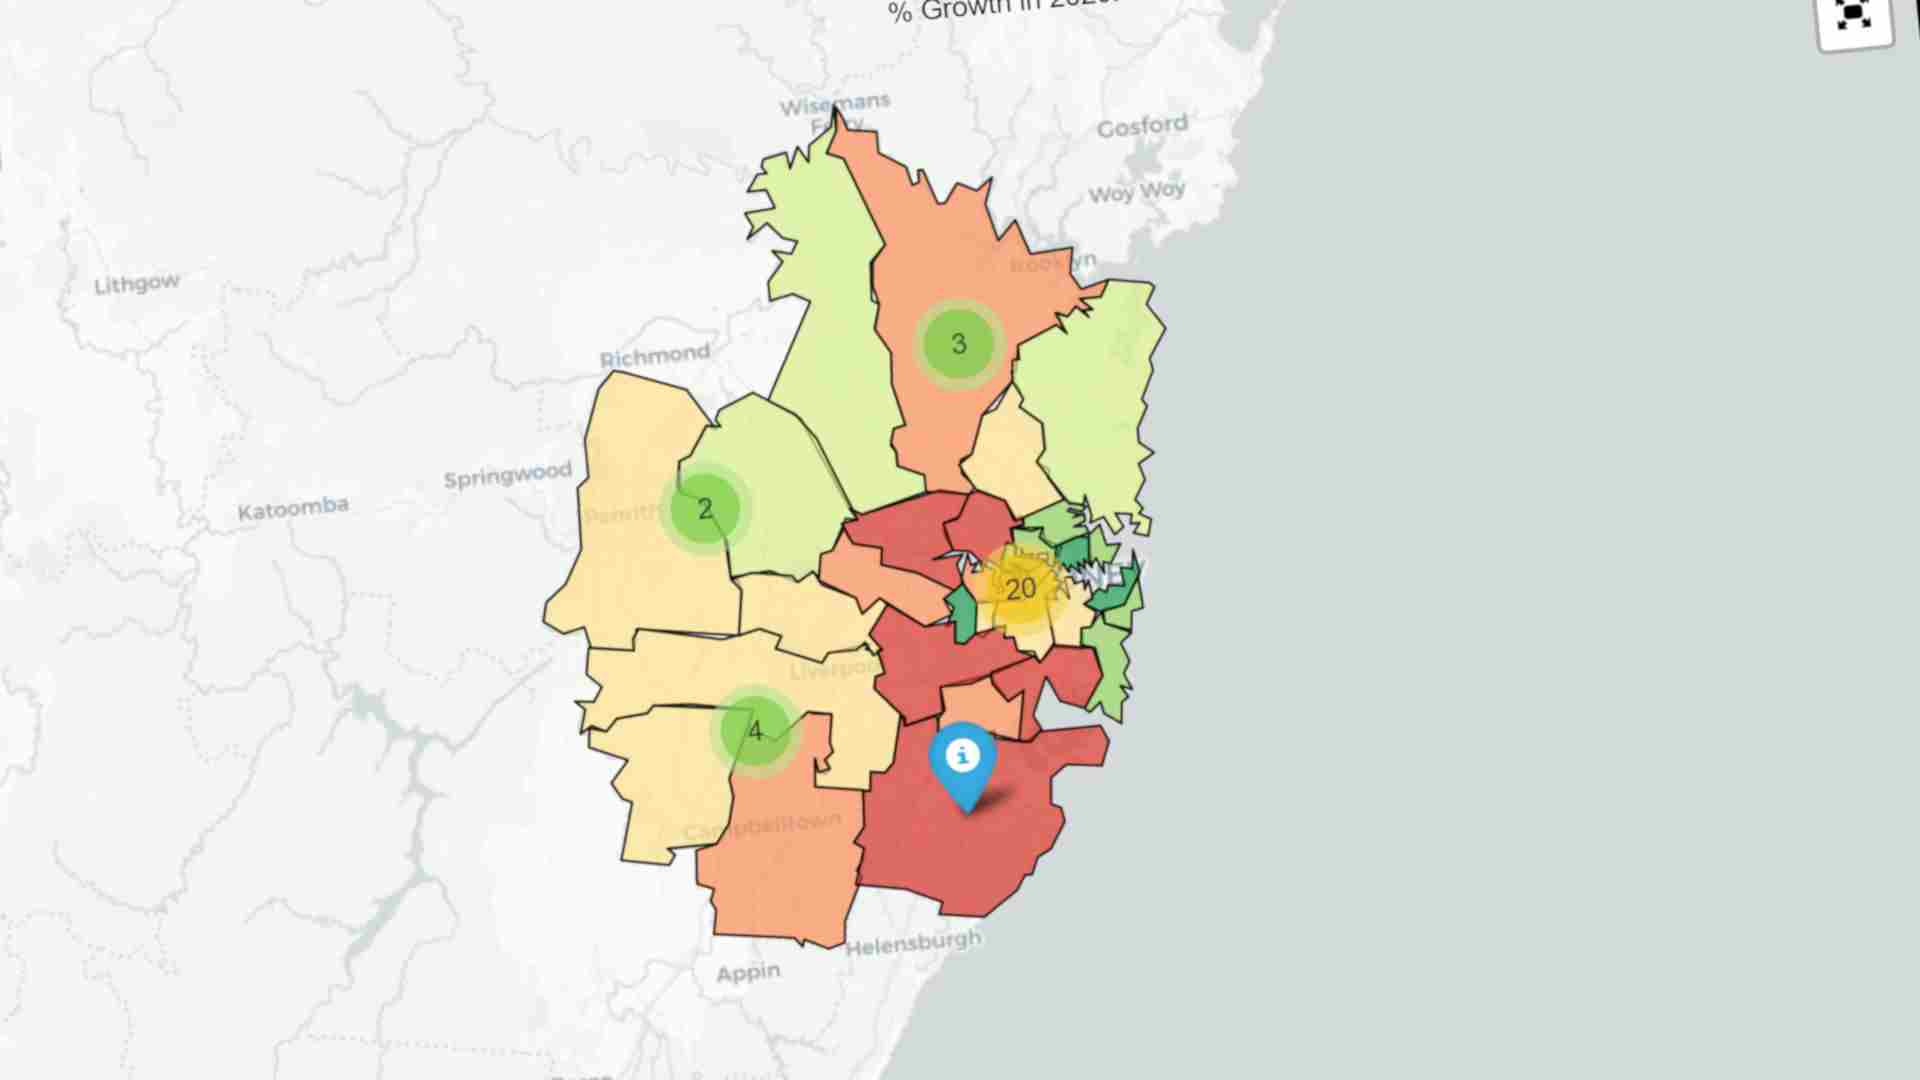 Interactive maps show the impact of COVID-19 on house prices